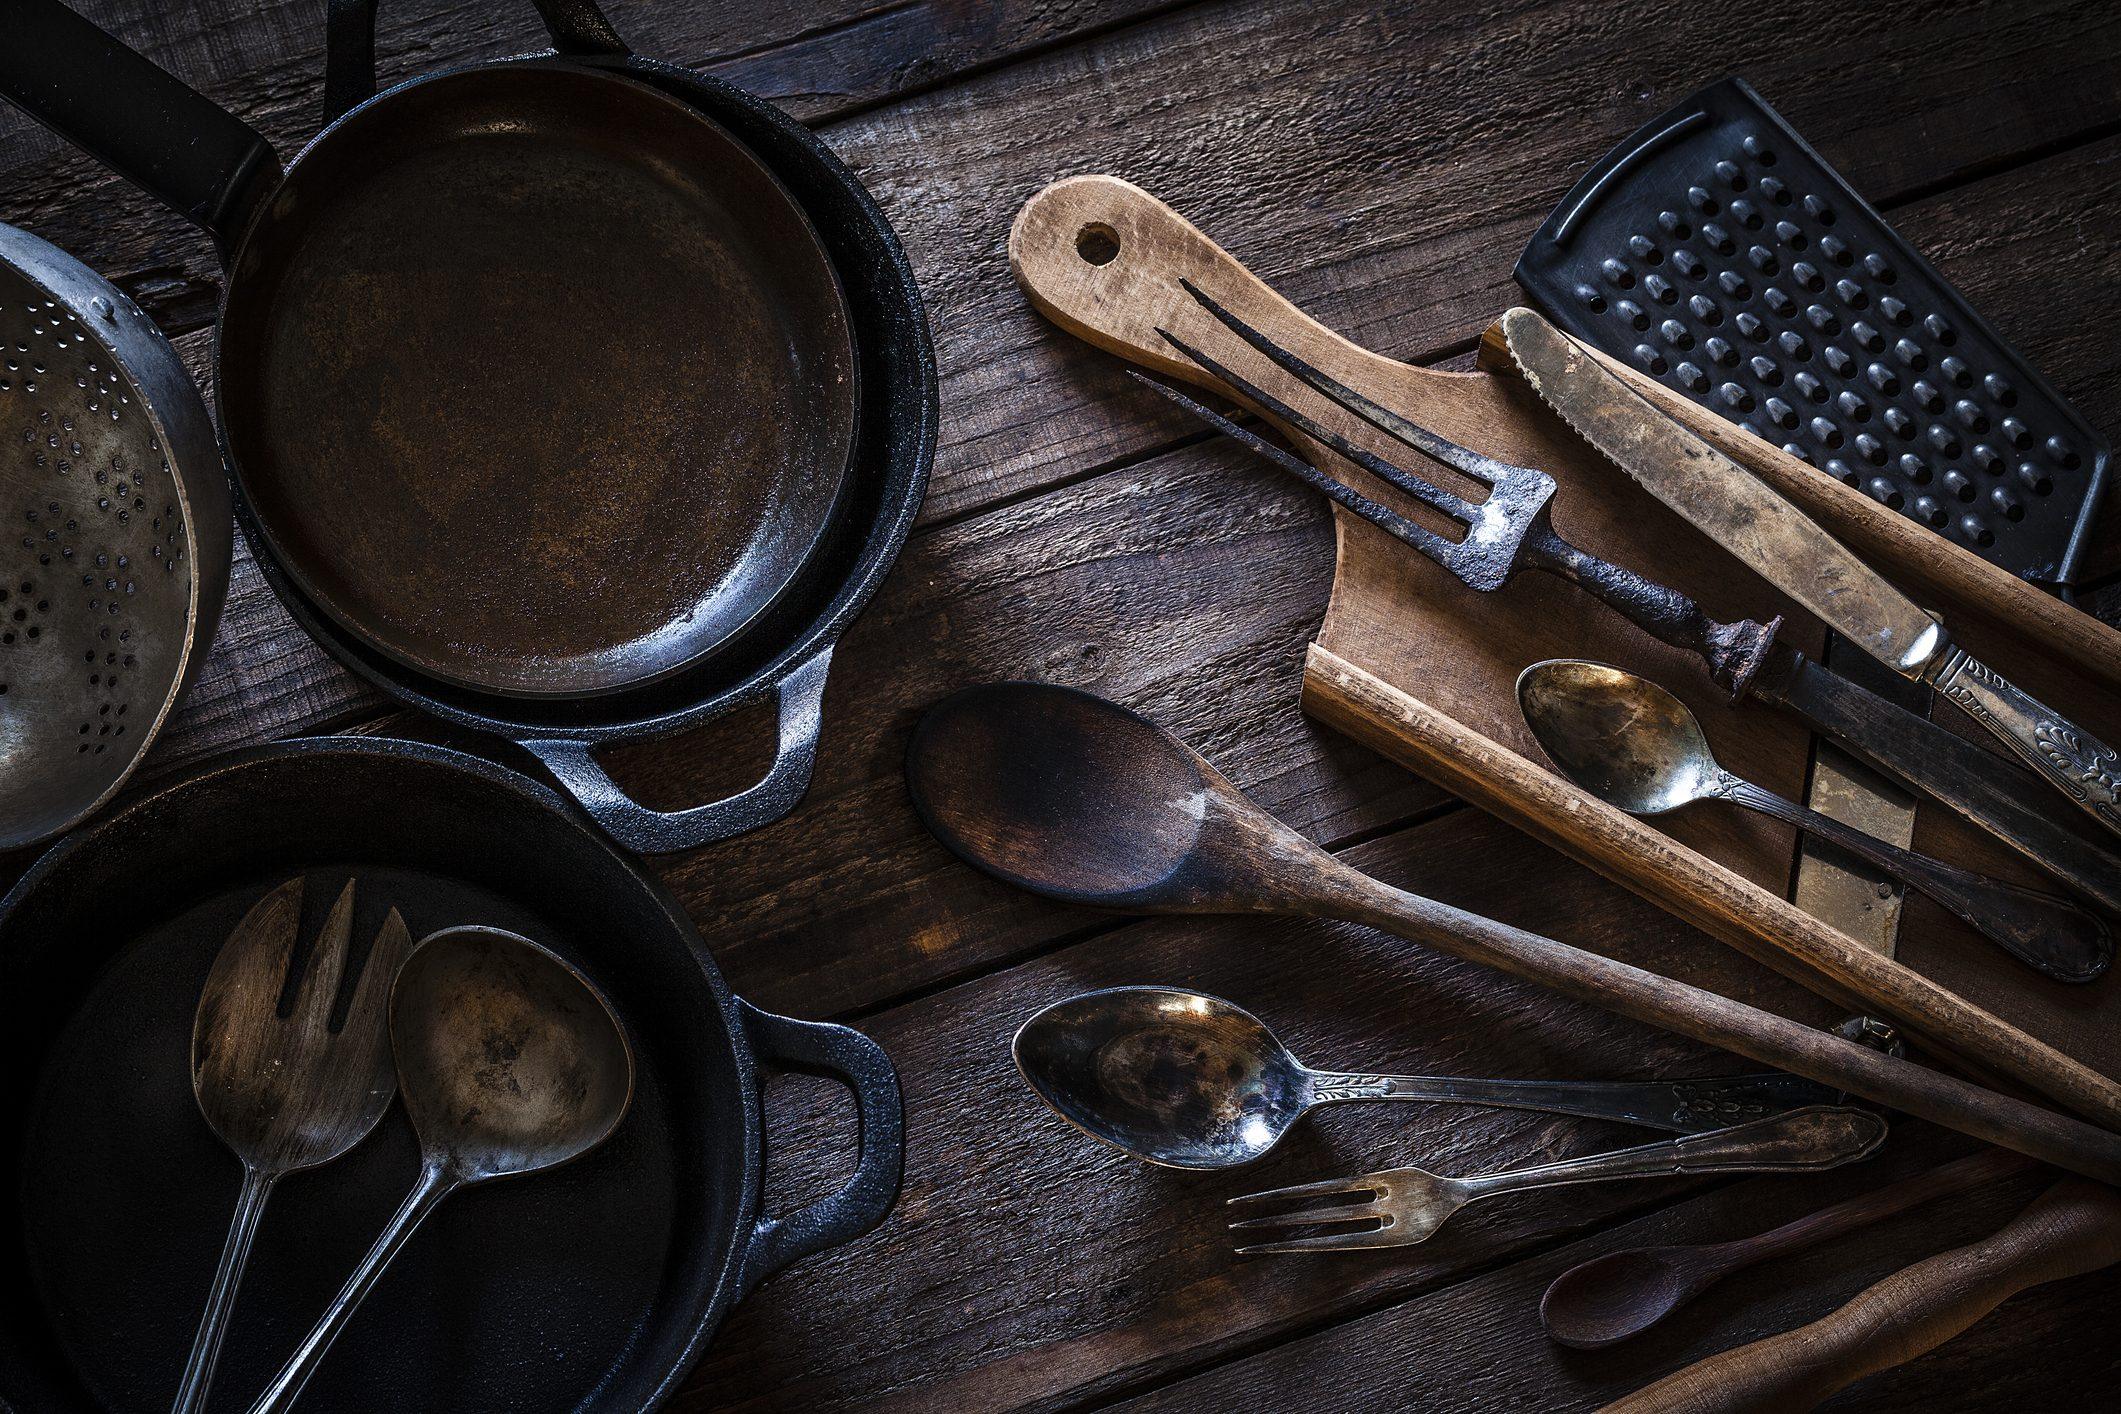 Old Kitchen Utensils How To Reuse Them Thanks To Creative